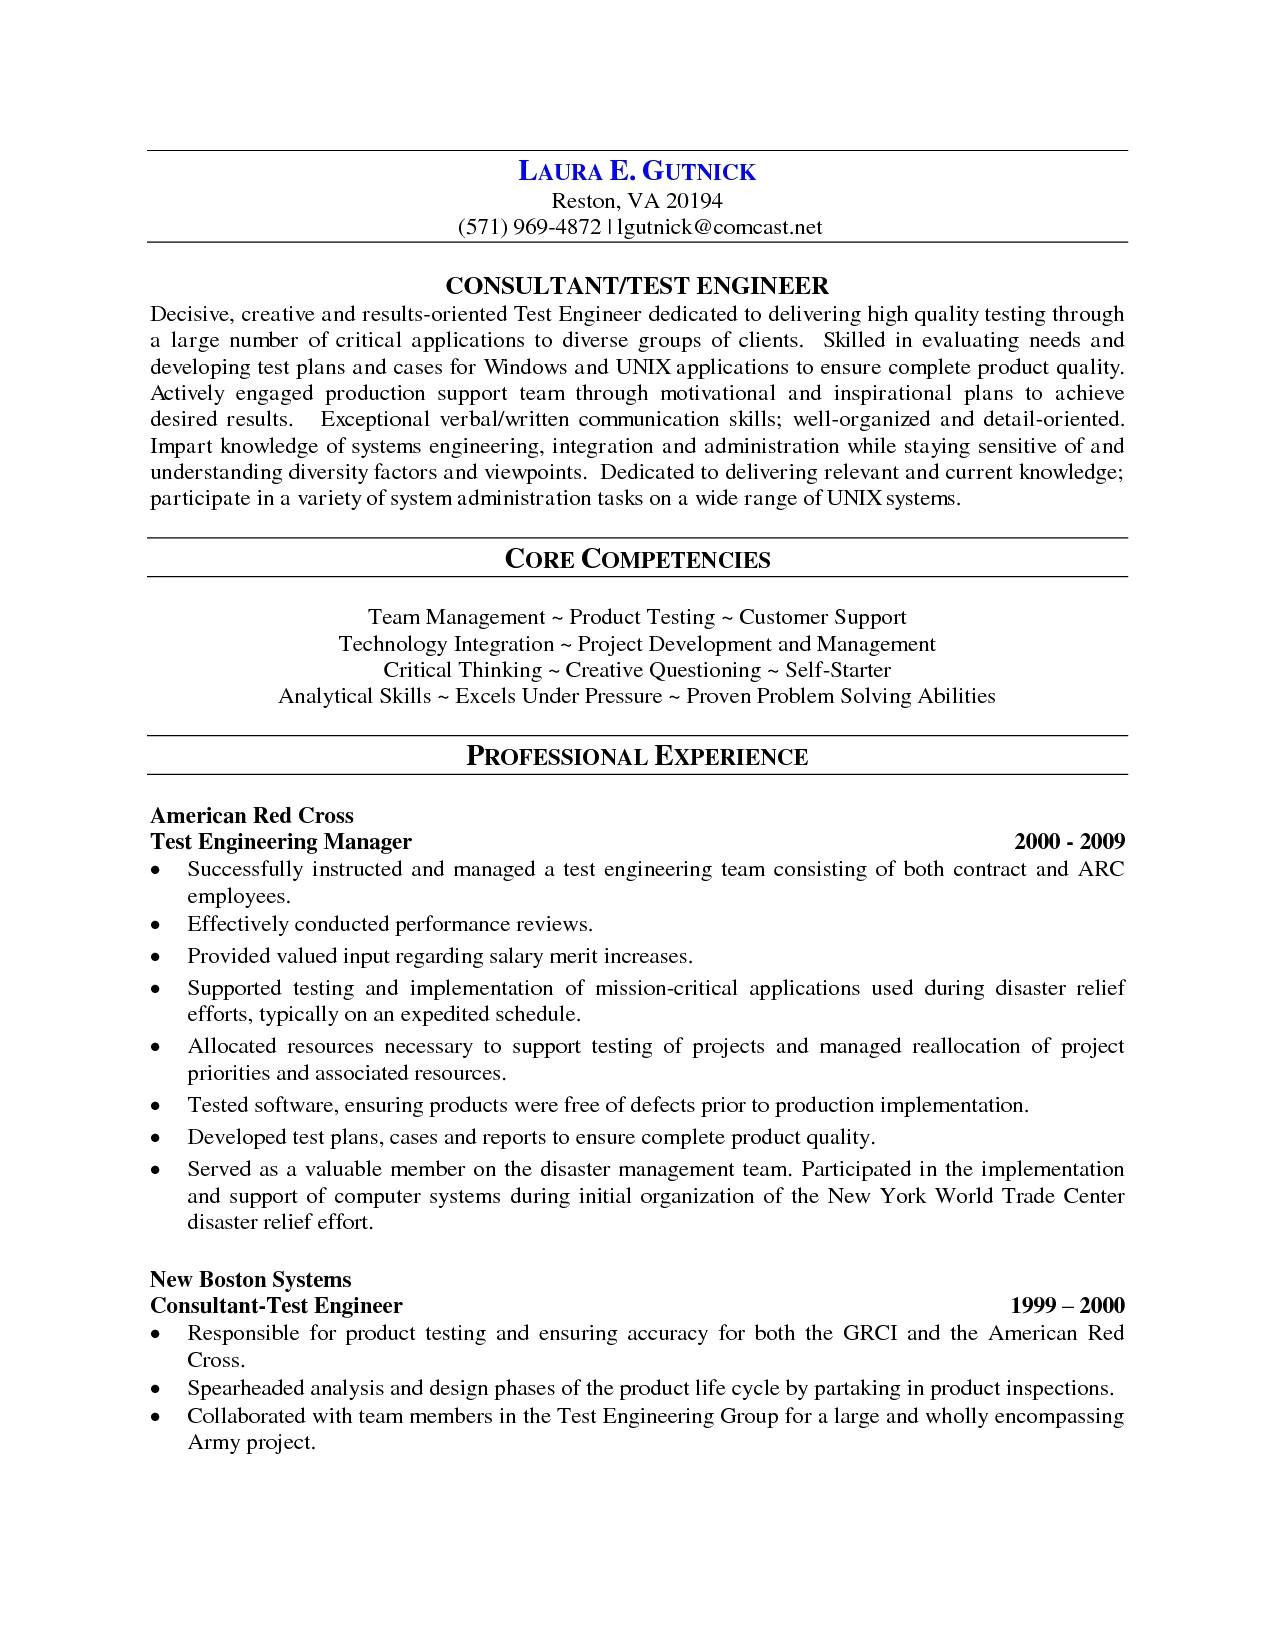 sample resume for software tester 2 years experience